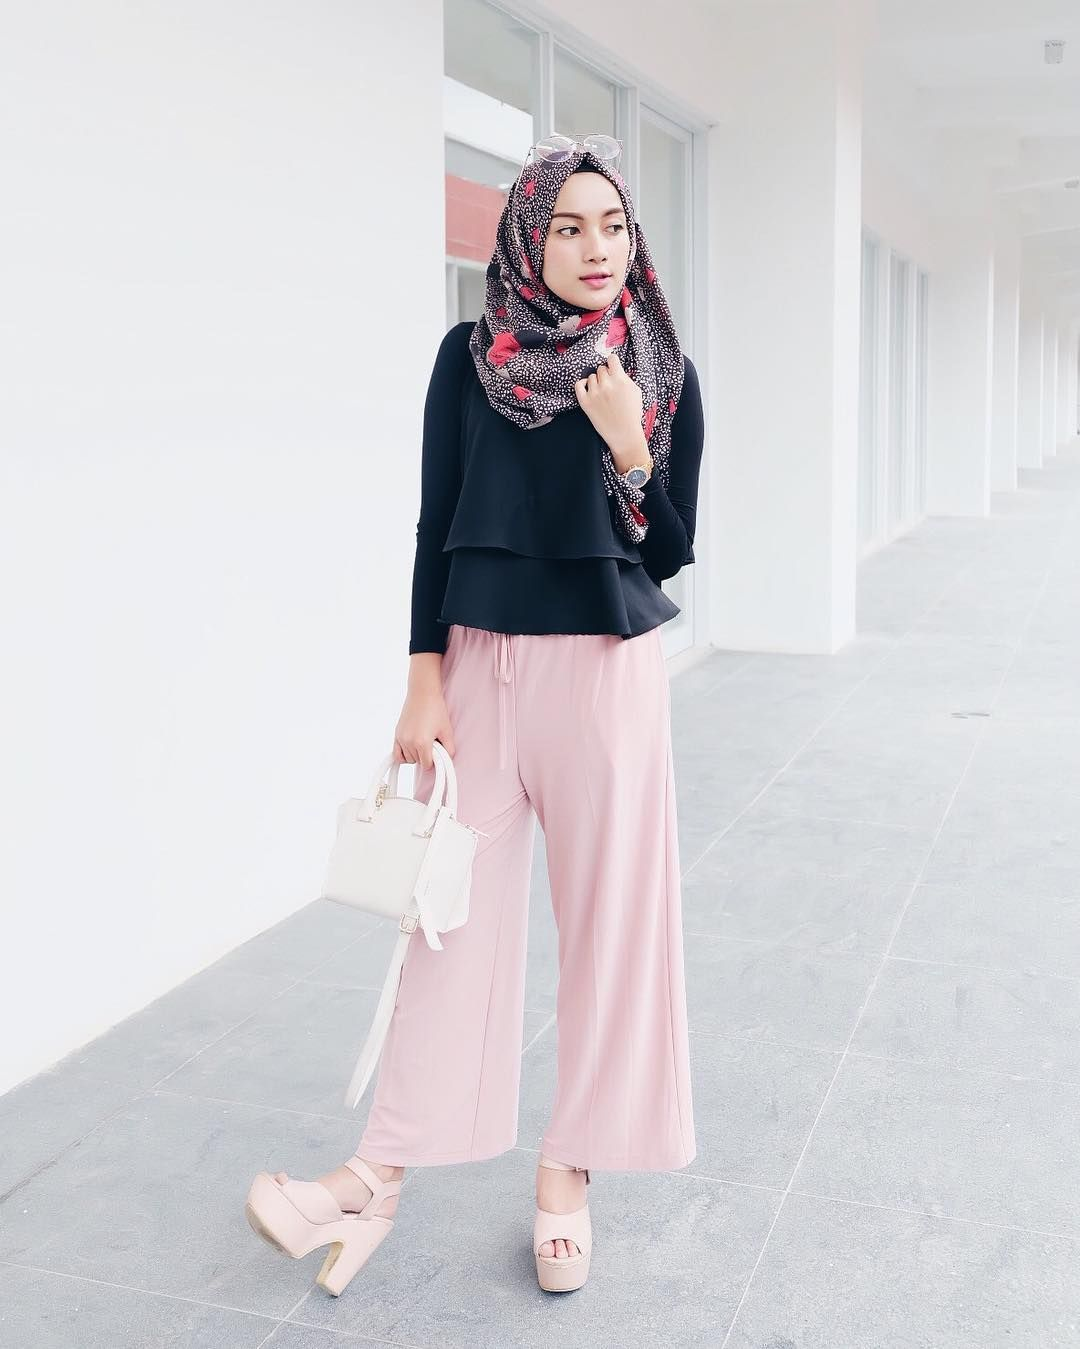 Pin by Shay Zee on Classy + Vogue Muslimah | Hijab fashion ...